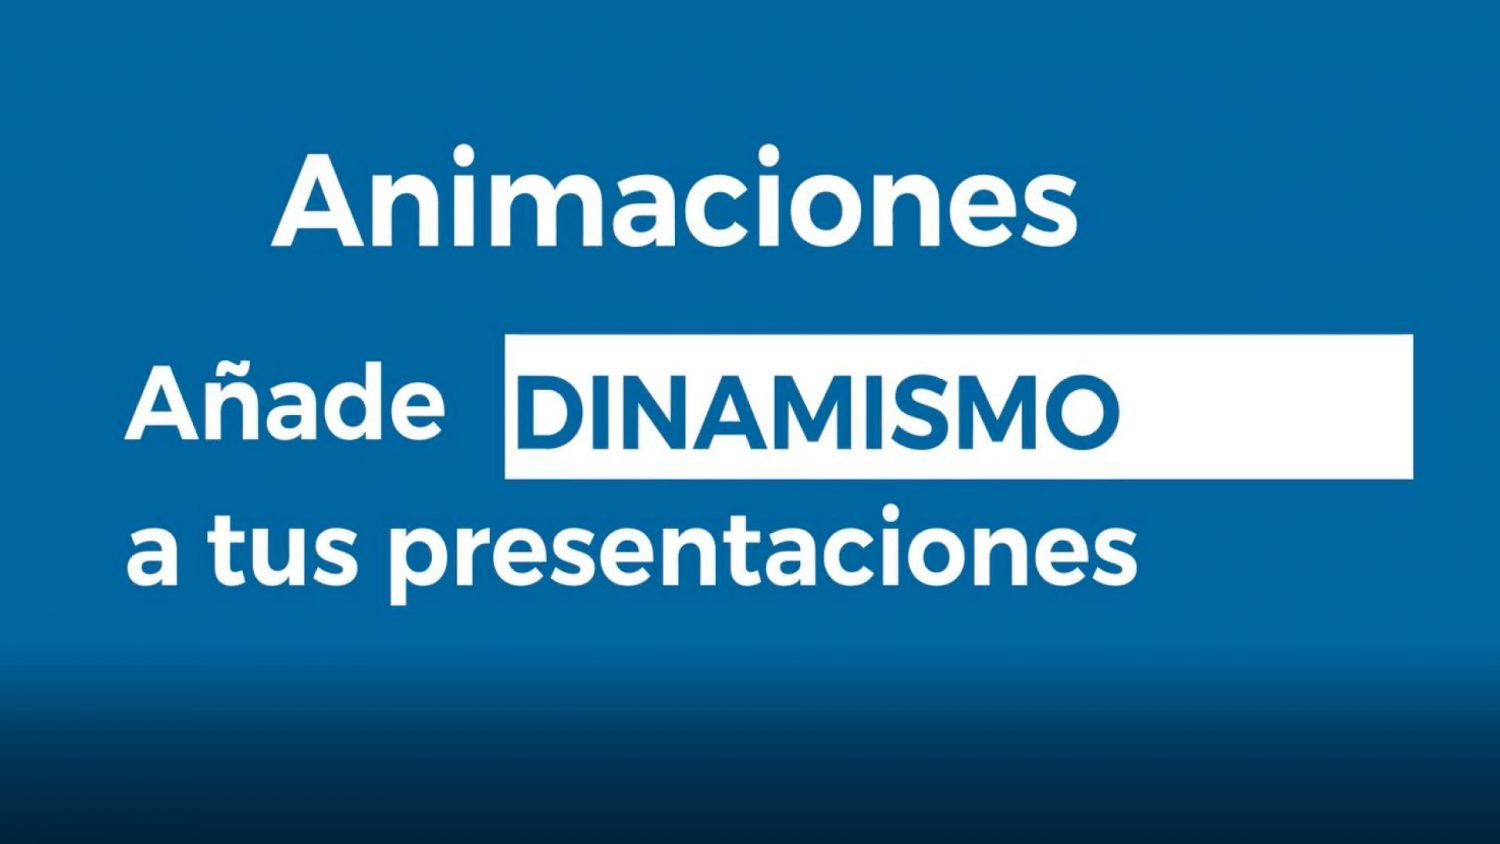 Point Out: Animaciones